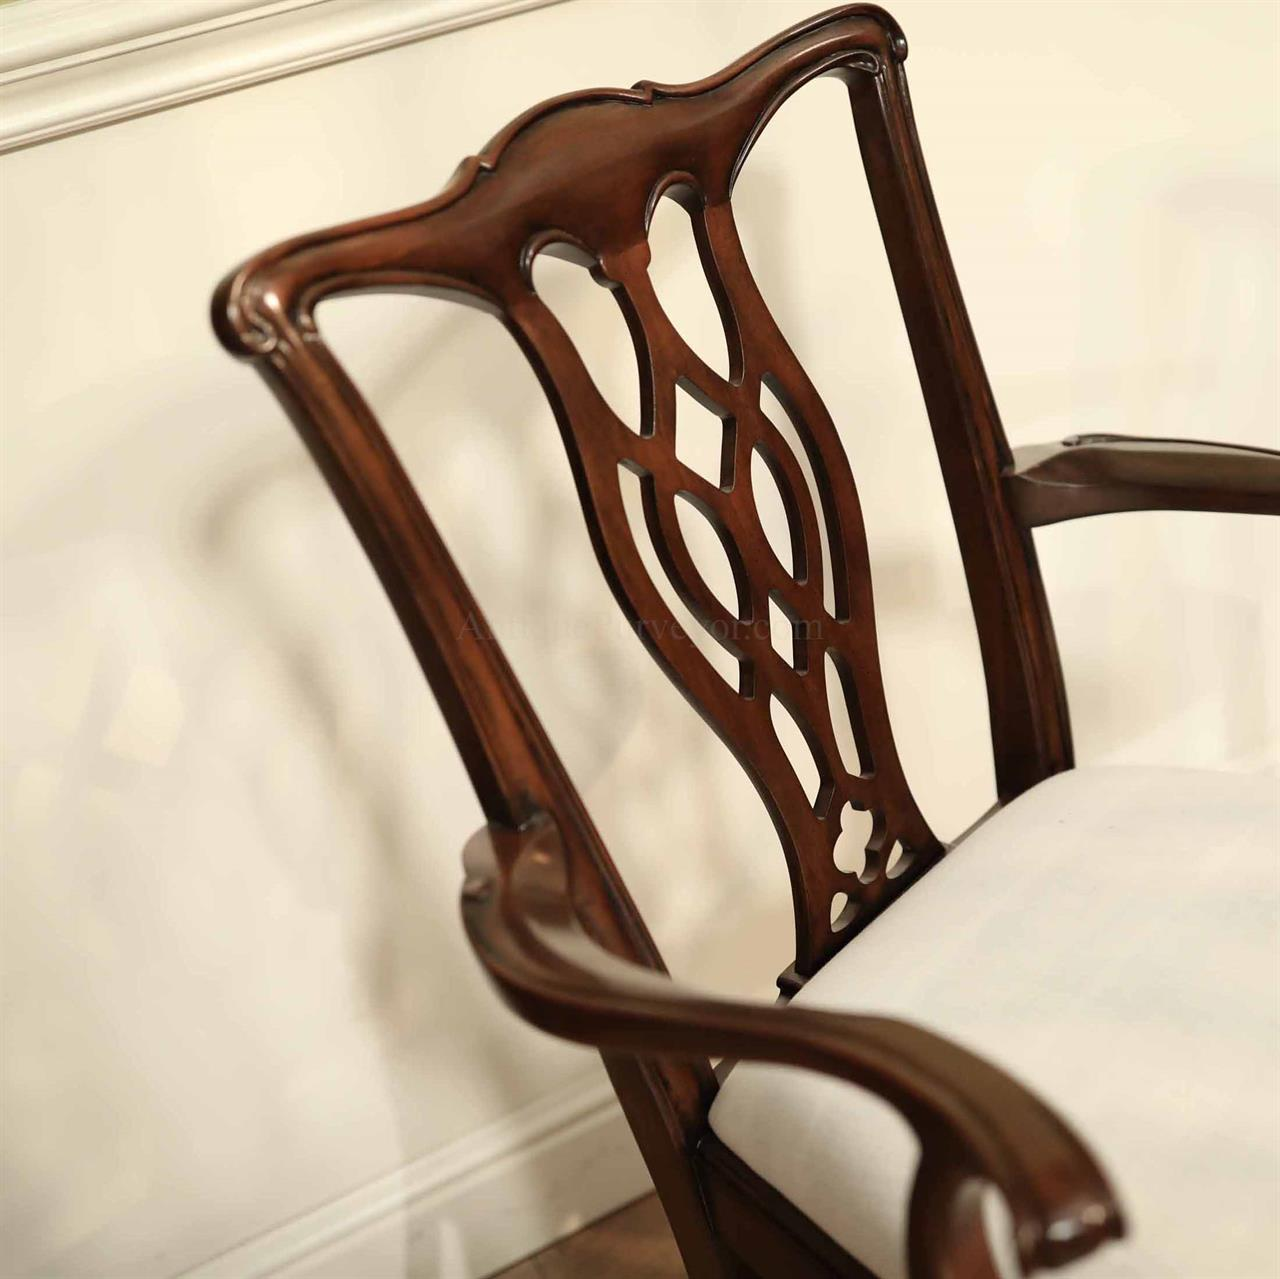 Chippendale Mahogany Dining Room Chairs: Mahogany Dining Chairs, Straight Leg Chippendale Chairs